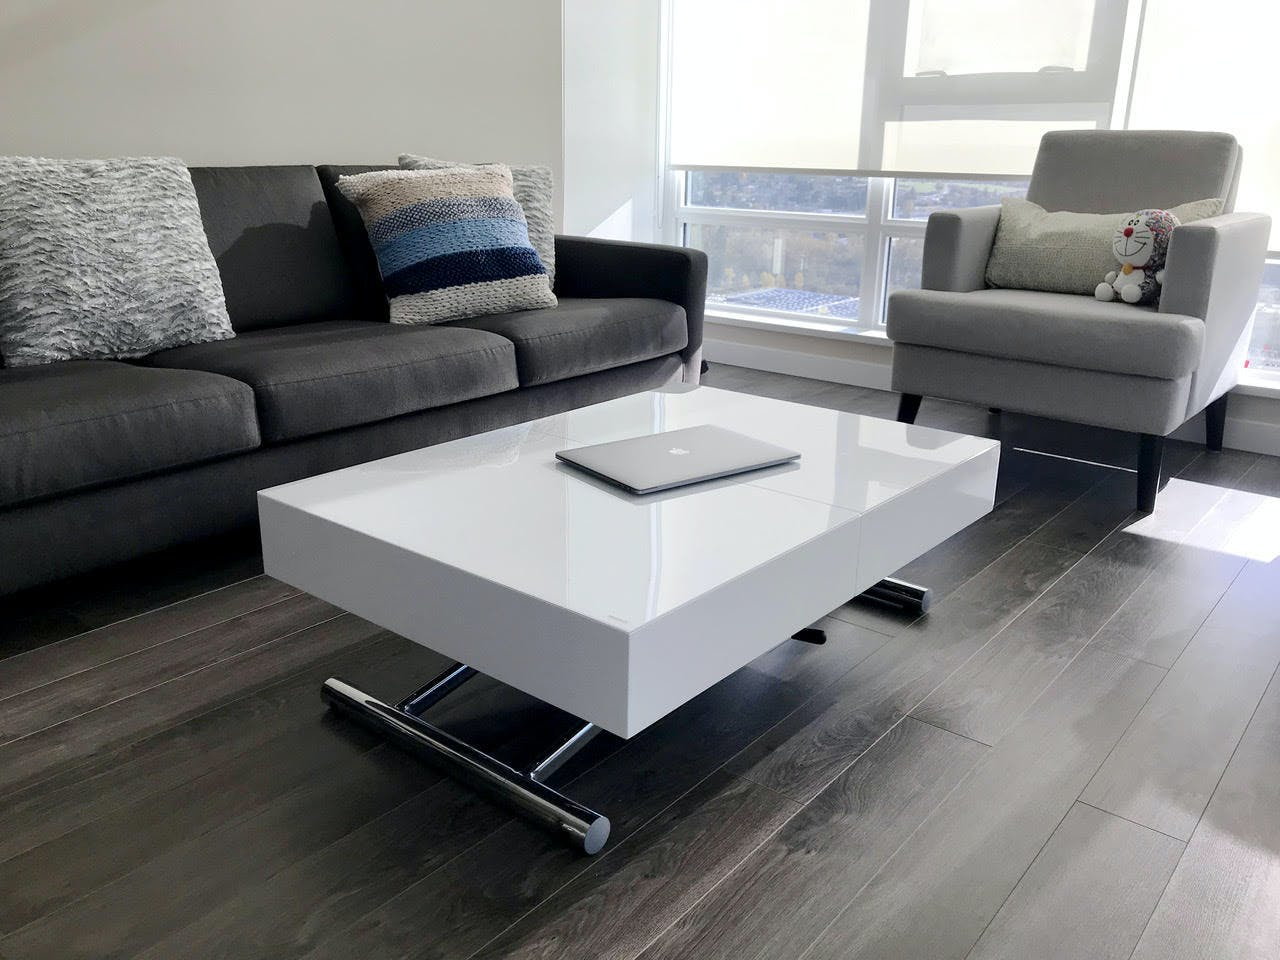 Expandable Box Coffee To Table Dining Set